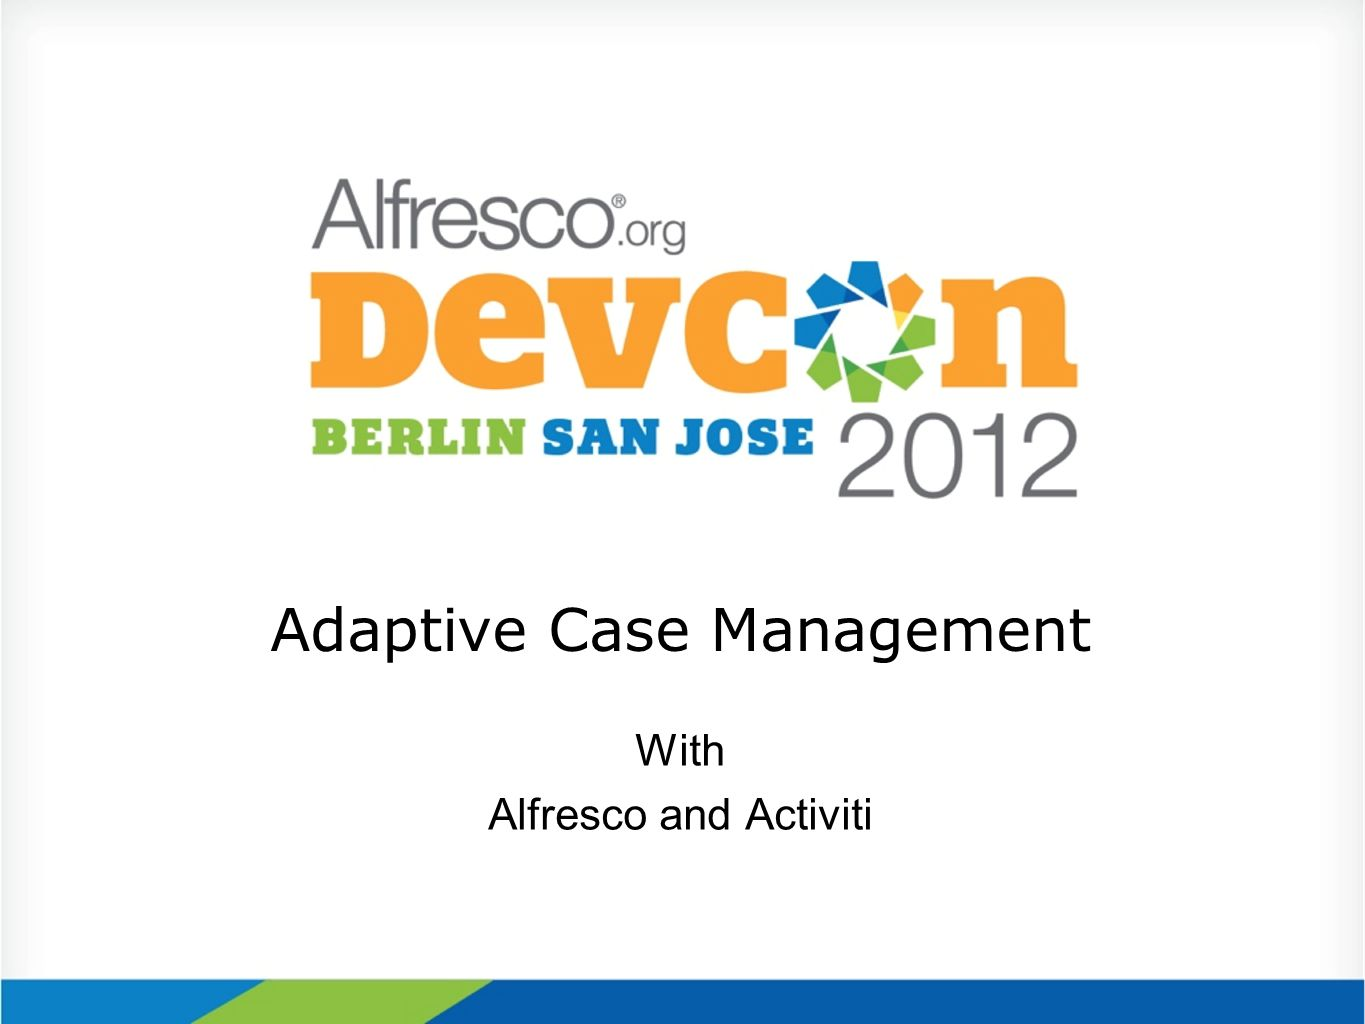 Adaptive Case Management With Alfresco and Activiti